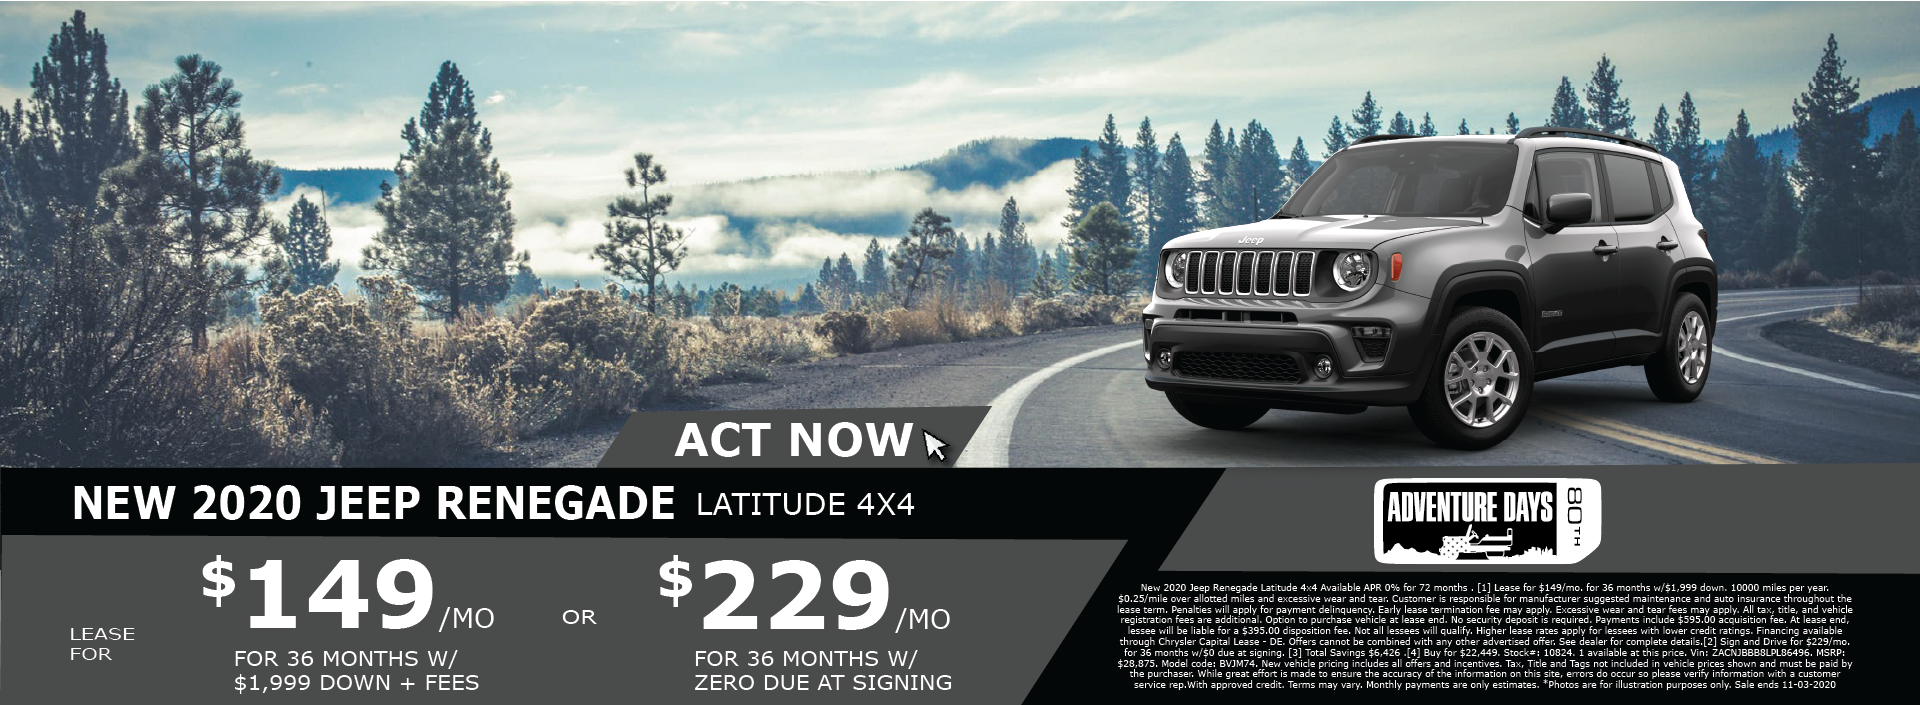 Whitewater – Jeep Renegade October 2020